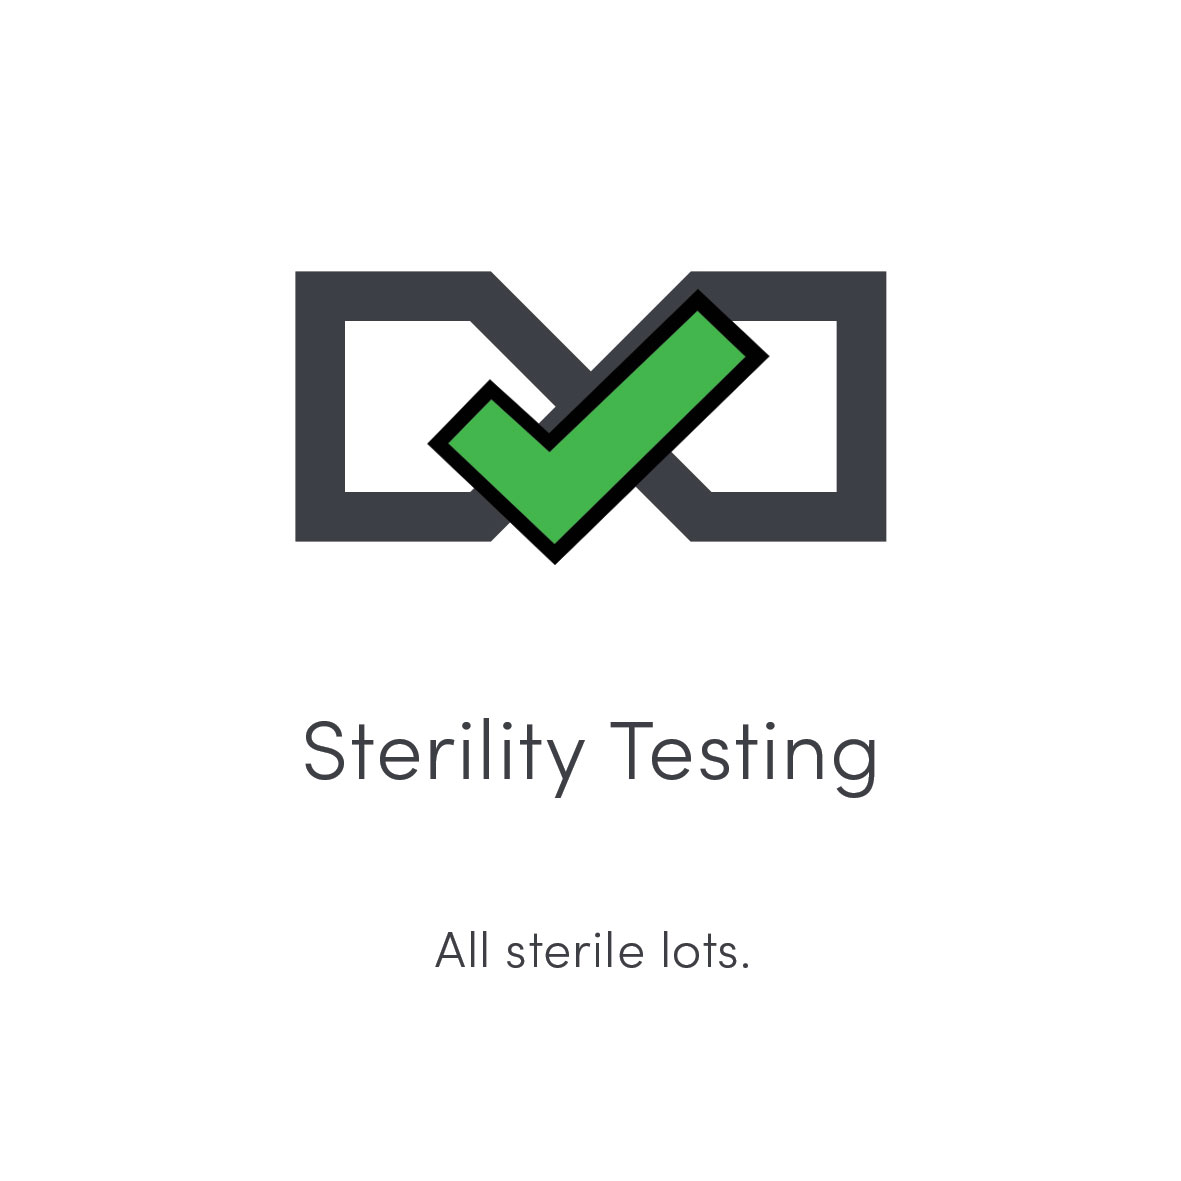 STERILITY TESTING   All sterile lots